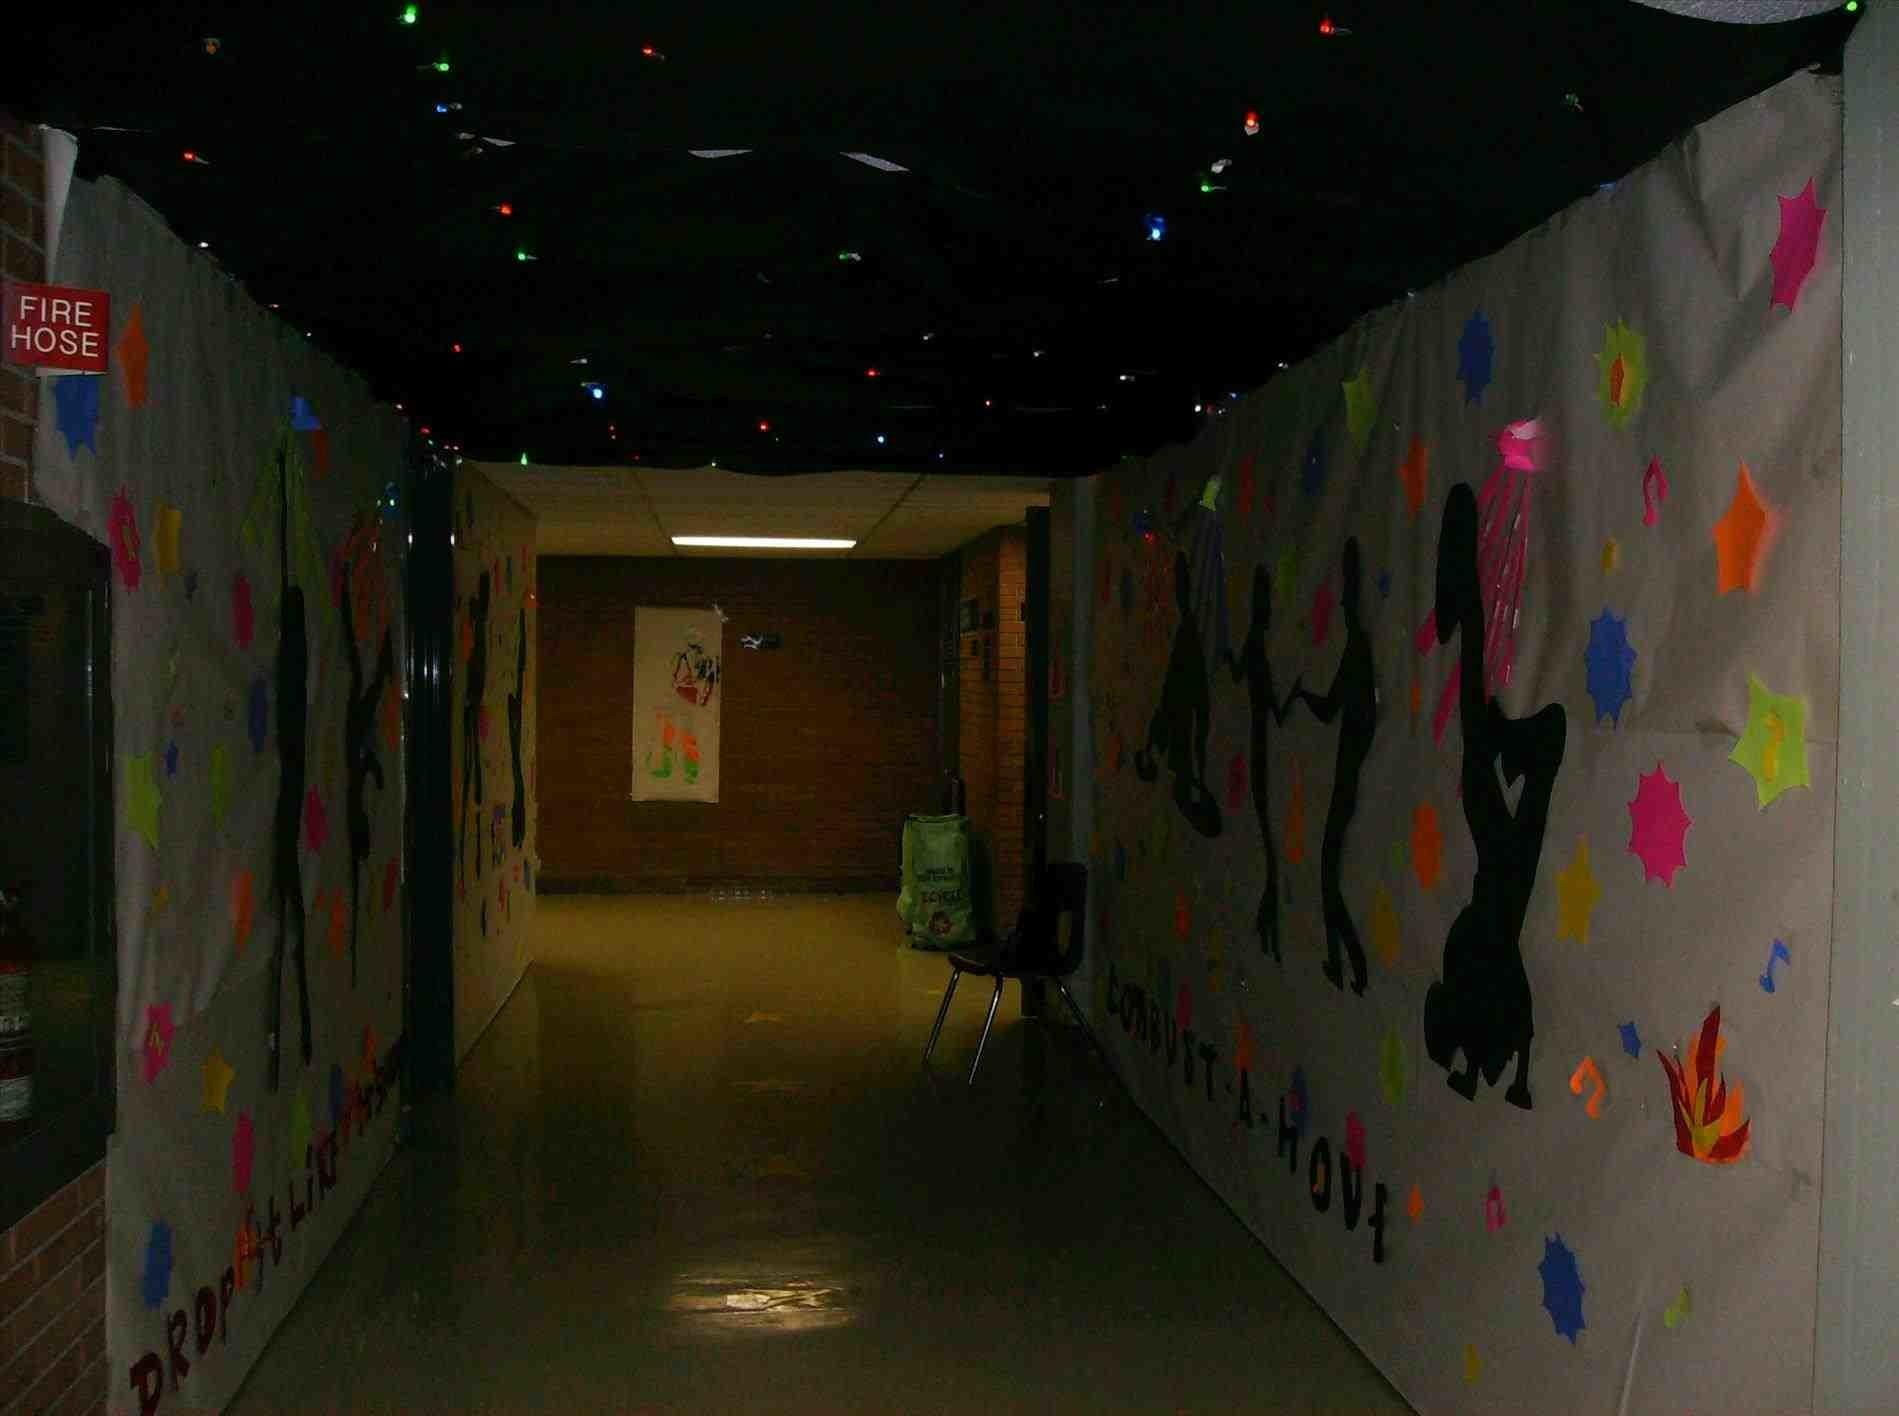 High Decorating Contest School Hallway Decor Place